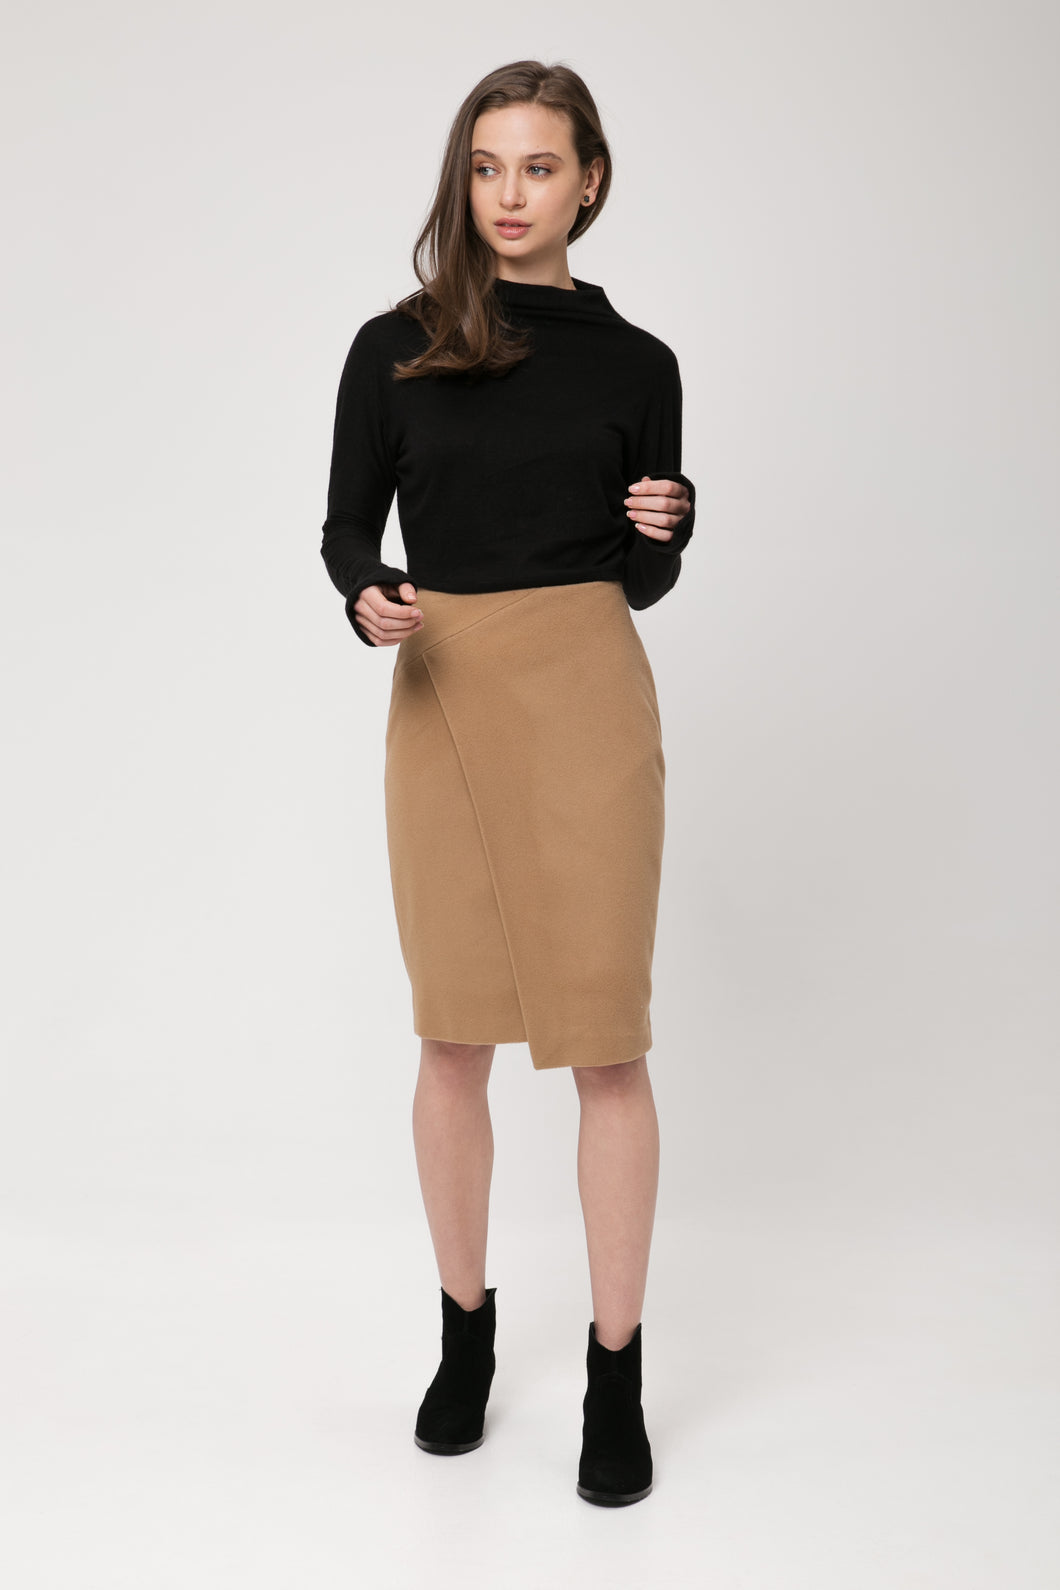 KANPAI Jupe midi mélange de laine vierge et cachemire/  KANPAI Midi skirt blend of virgin wool and cashmere